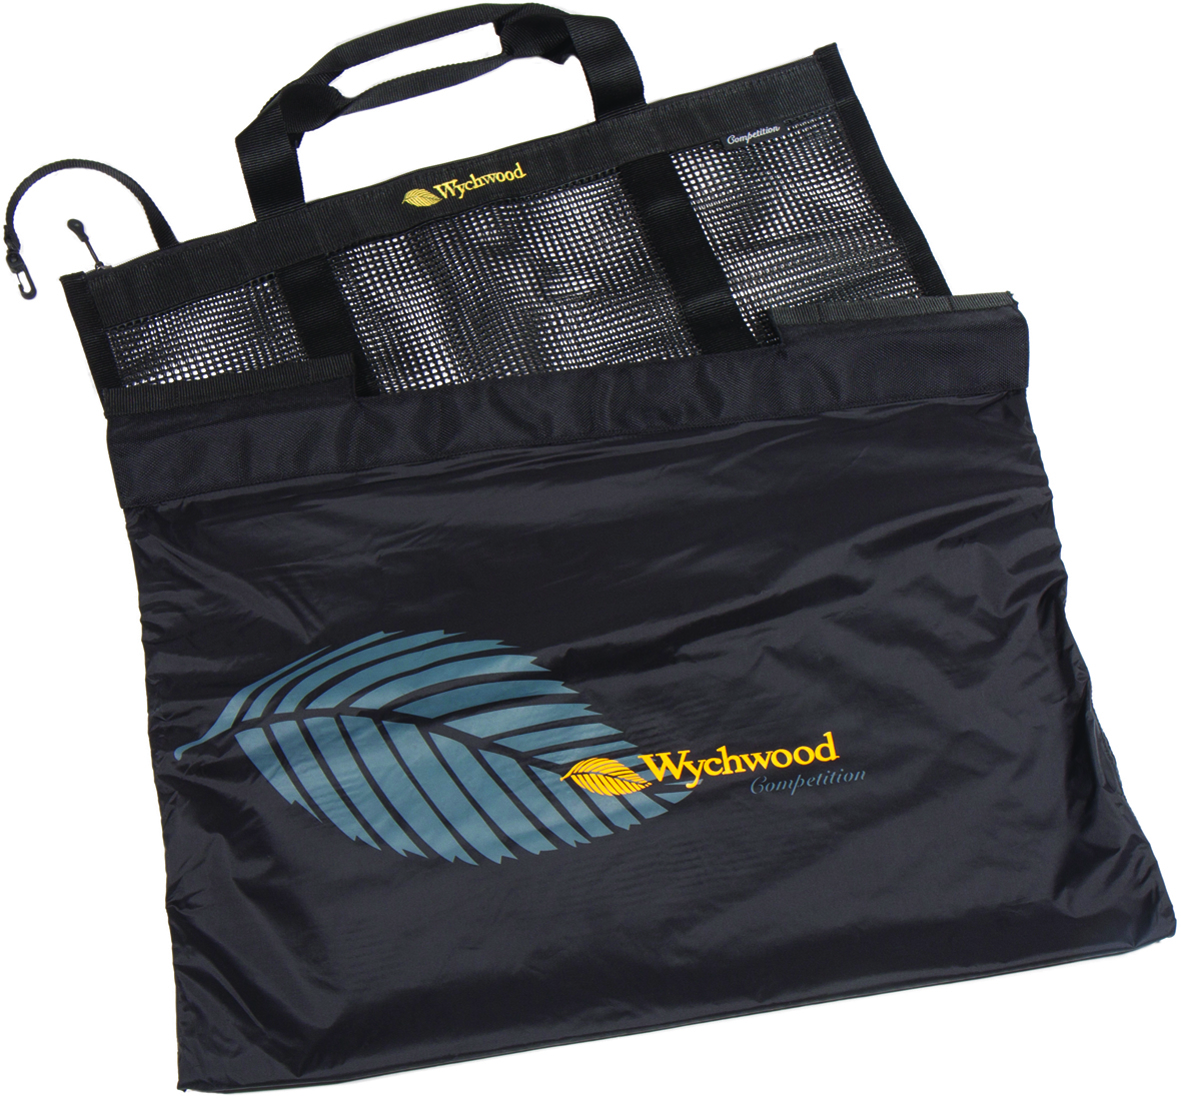 Wychwood 4 fish competition bass bags glasgow angling centre for Bass pro fishing backpack